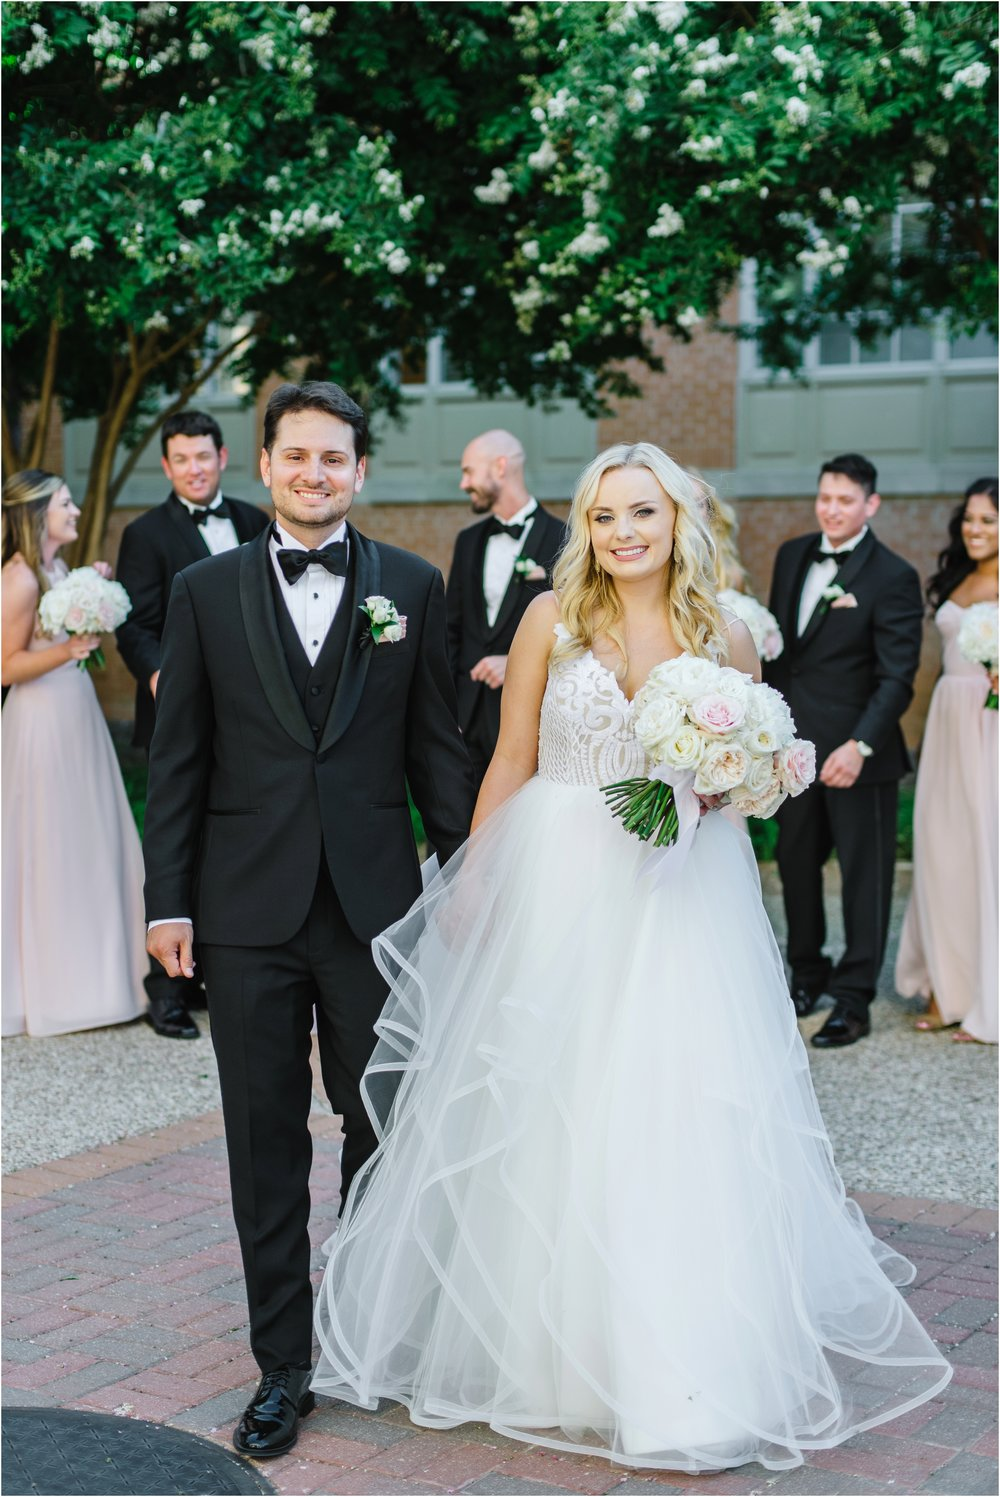 dallasweddingphotographer_fortworthweddingphotographer_texasweddingphotographer_mattandjulieweddings_0018.jpg